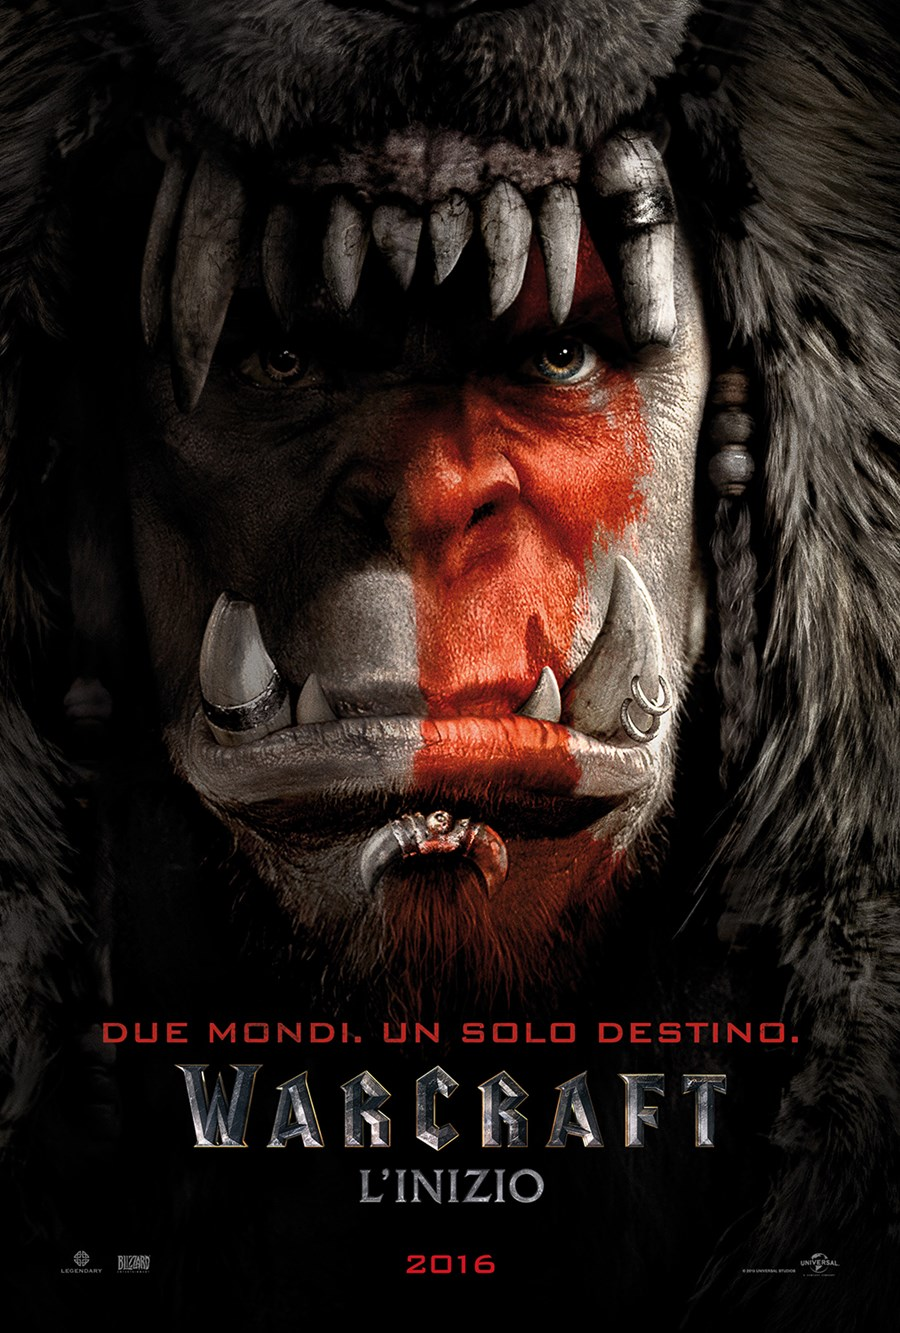 Warcraft - L'inizio: il character poster di Durothan